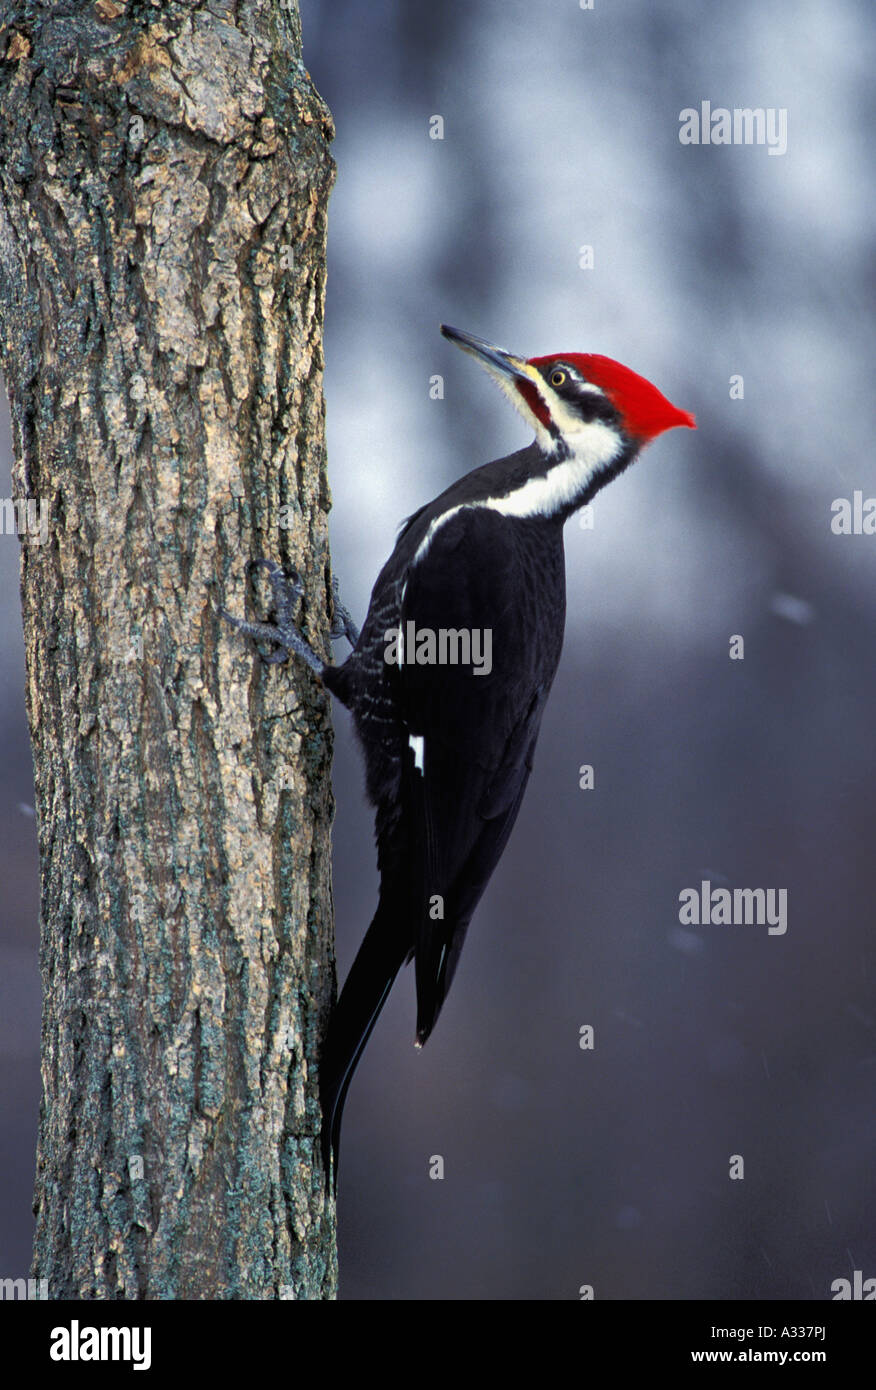 Pileated Woodpecker Dryocopus pileatus Clinging to Side of Tree Searching for Food in Winter Forest Southern Indiana - Stock Image